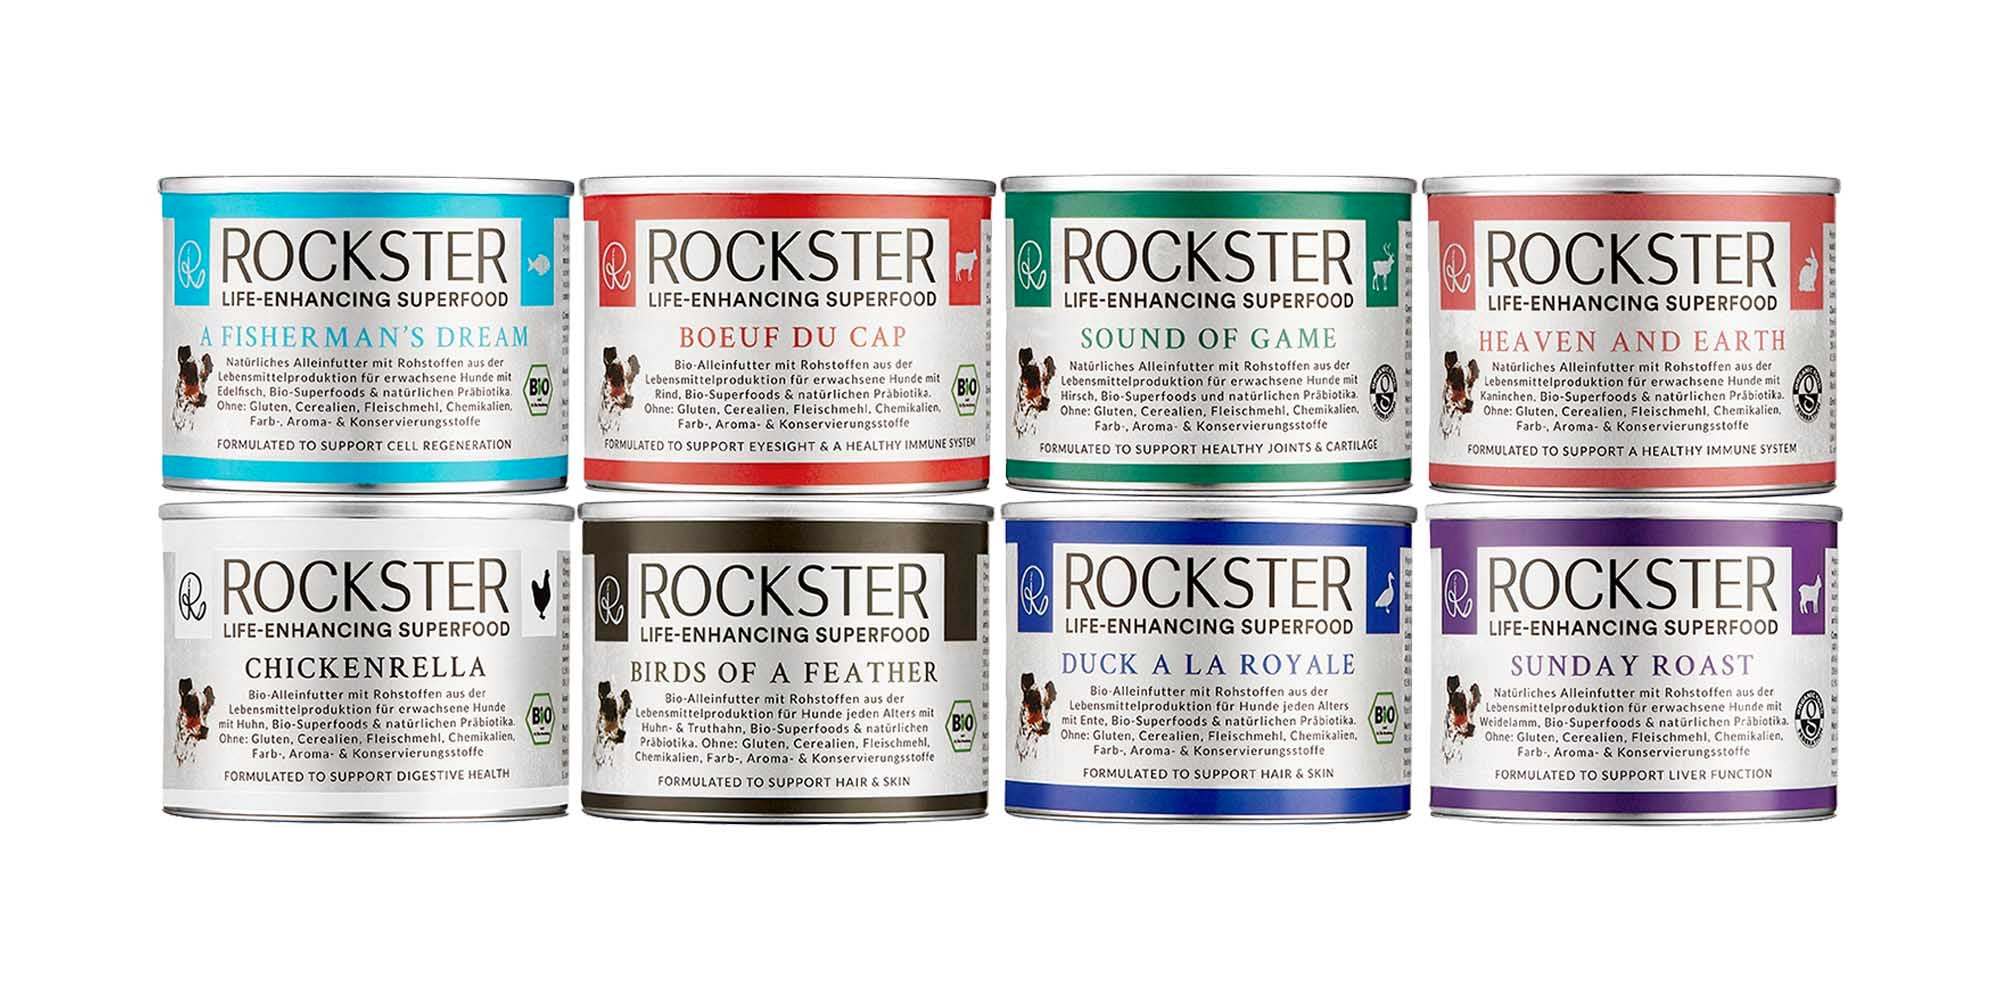 Rockster Superfood